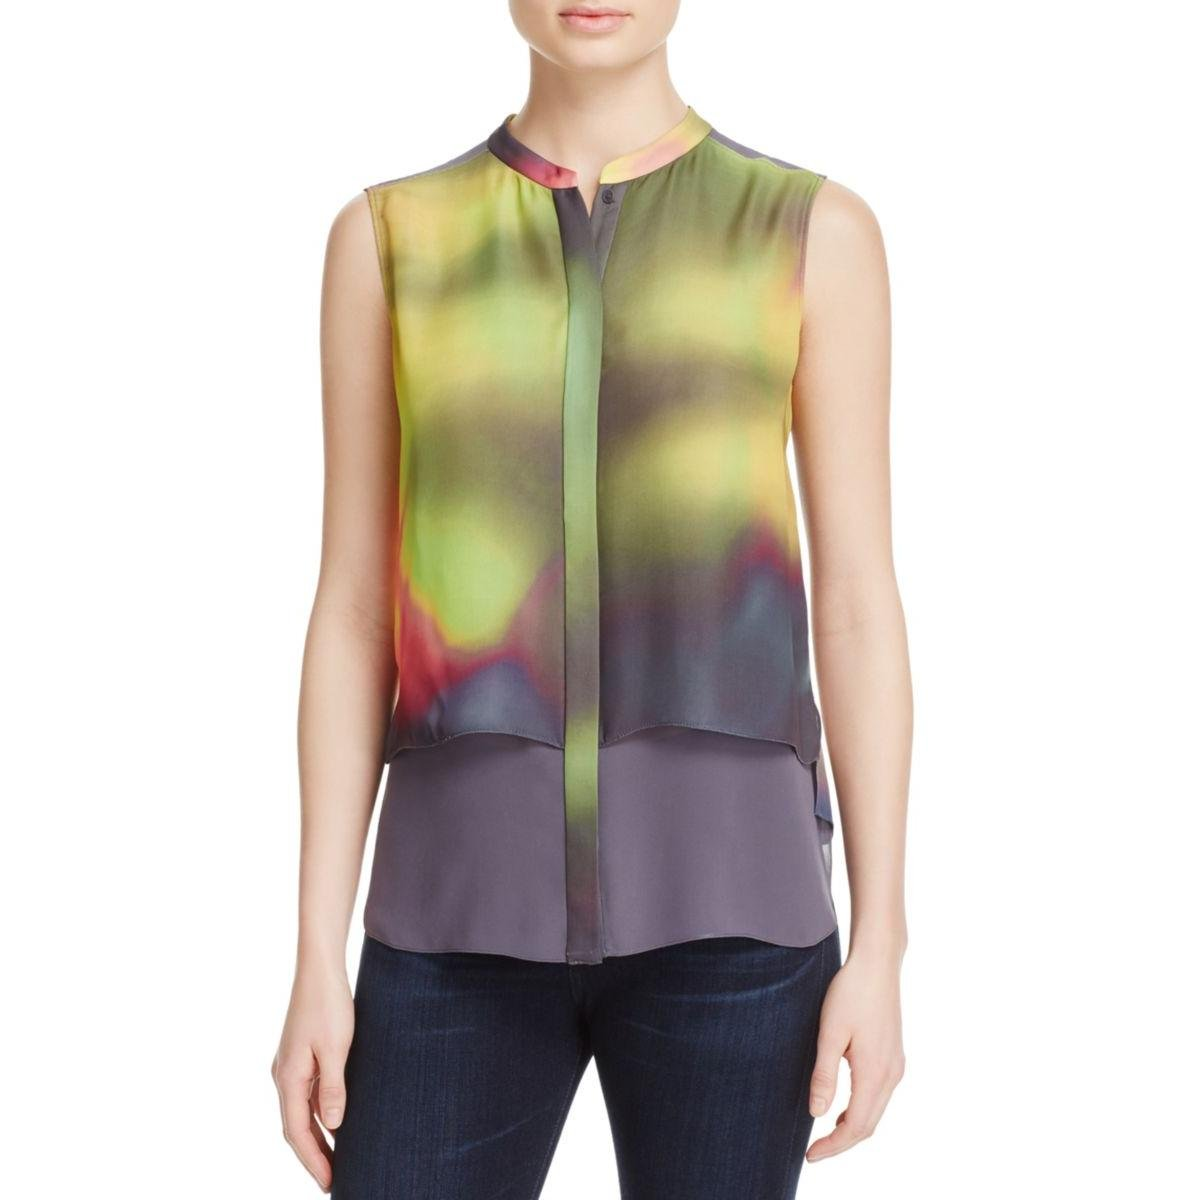 Elie Tahari Womens Eve Popover Chiffon Button-Down Top Multi L by Elie Tahari